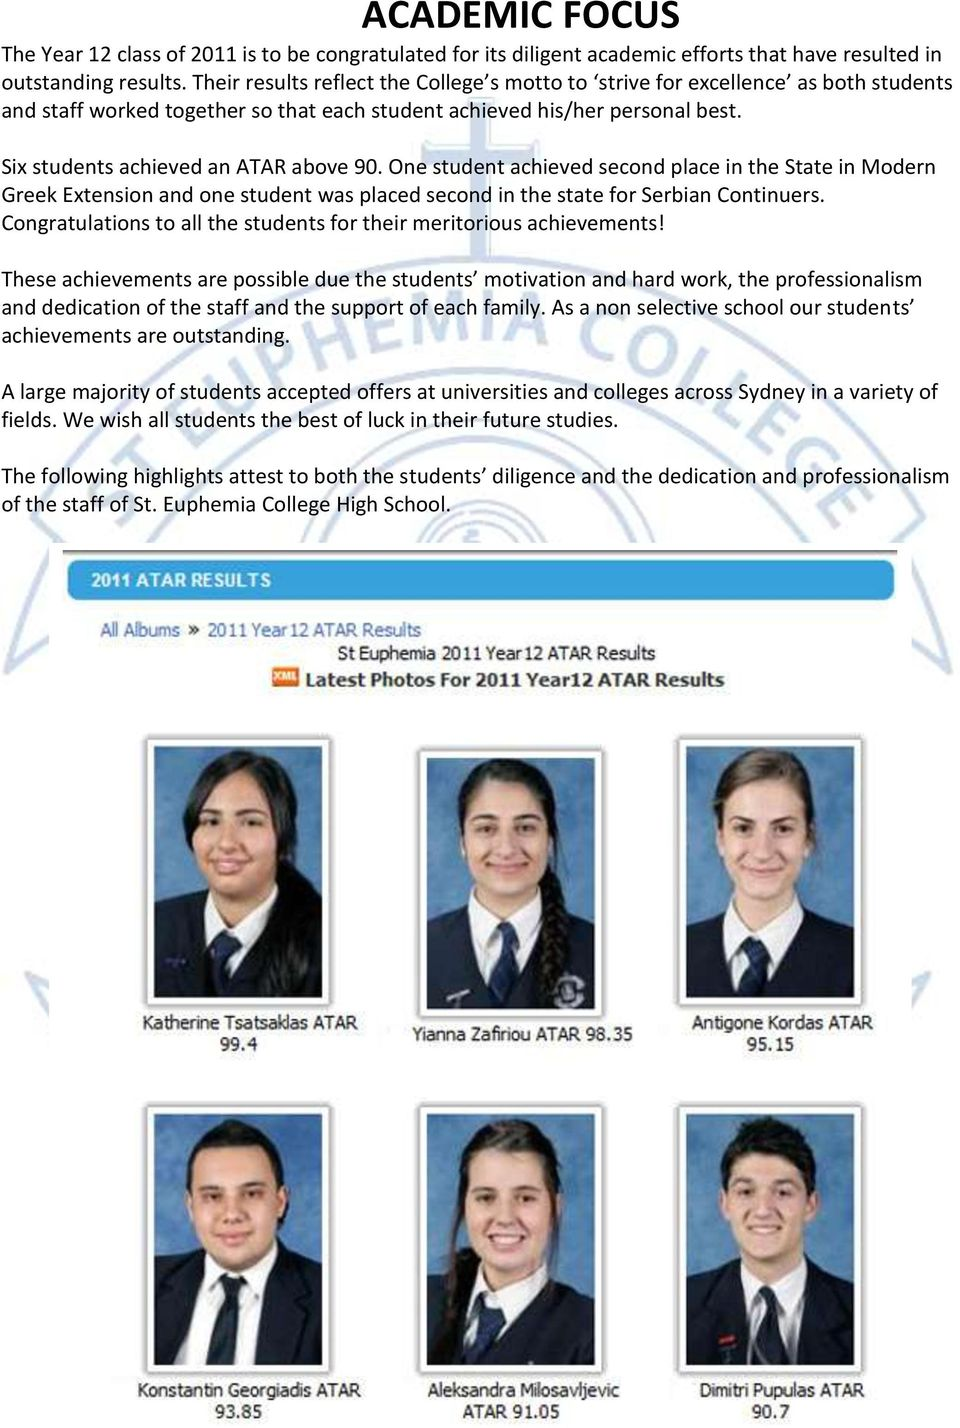 Six students achieved an ATAR above 90. One student achieved second place in the State in Modern Greek Extension and one student was placed second in the state for Serbian Continuers.